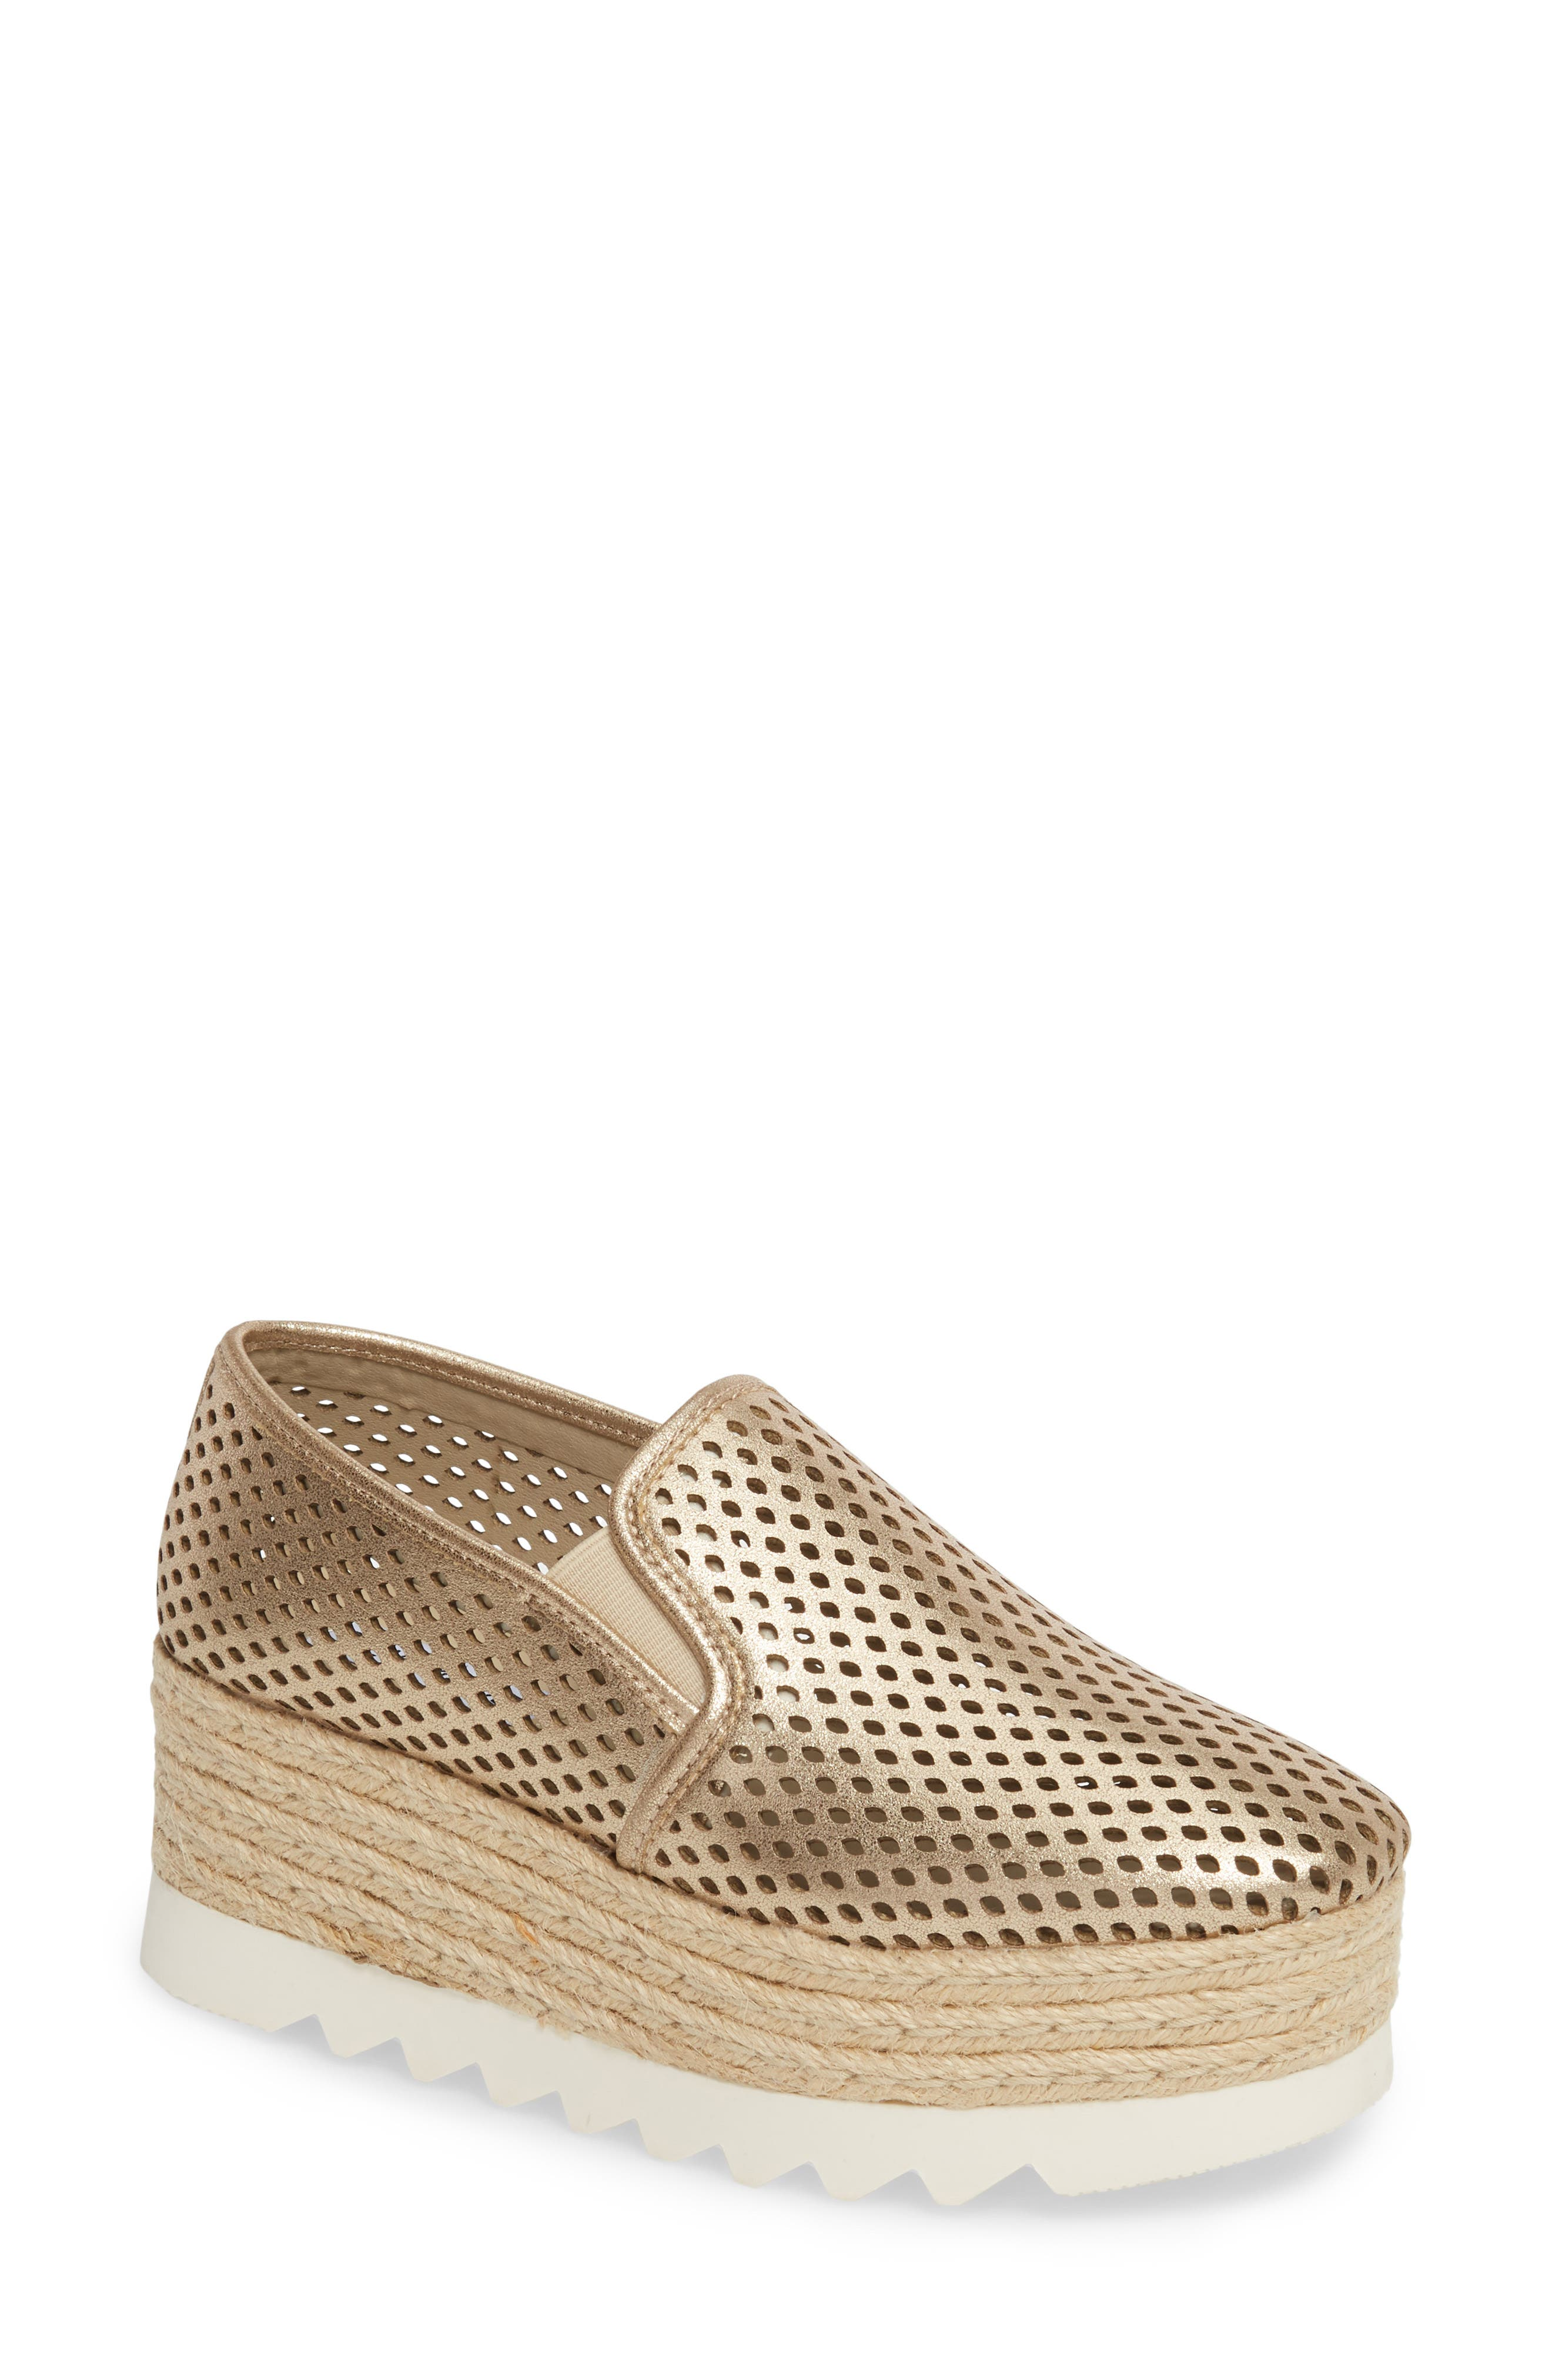 Kara Perforated Platform Loafer,                             Main thumbnail 1, color,                             Platinum